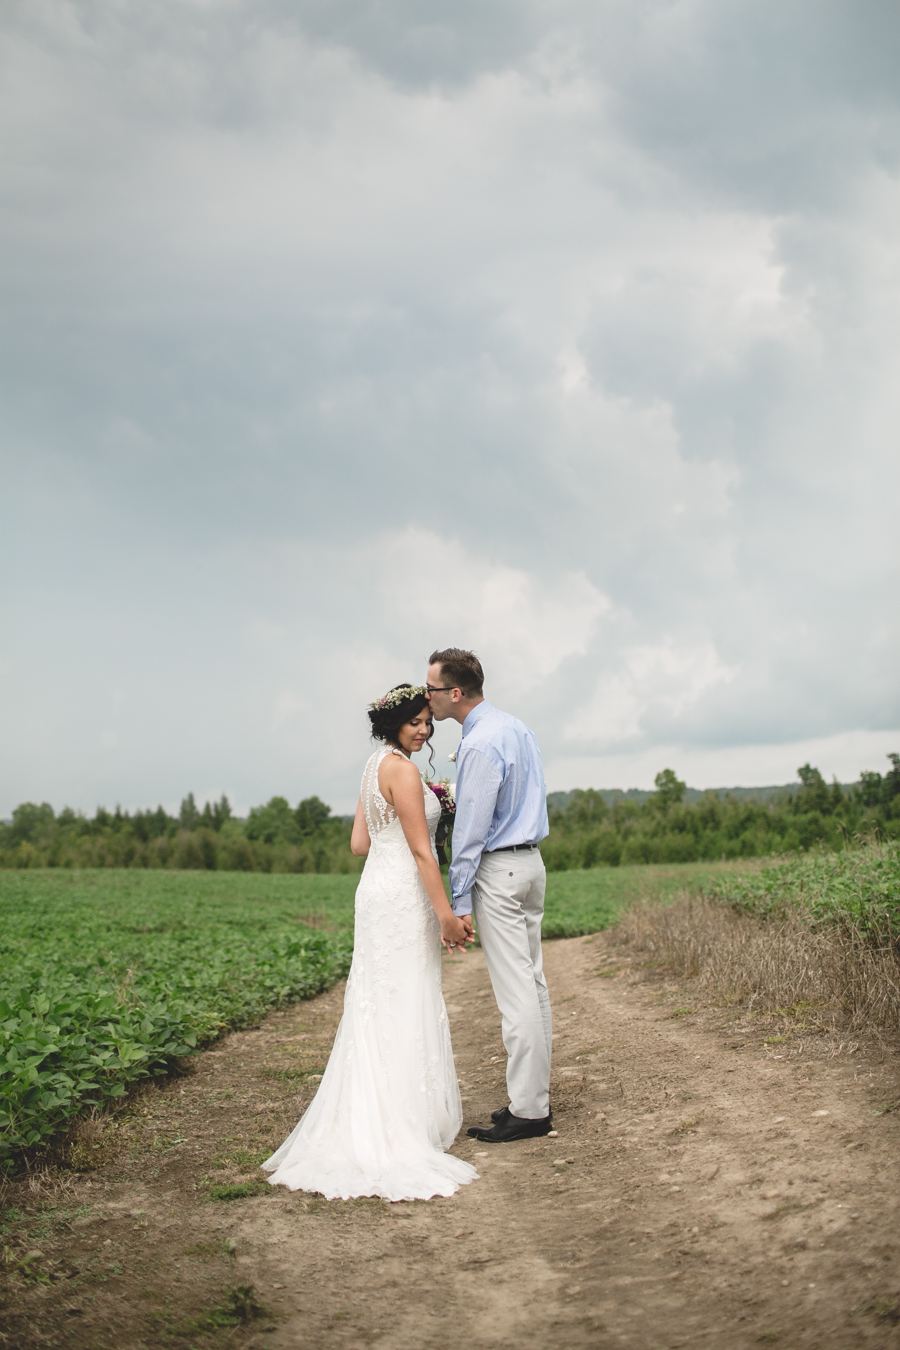 south pond farms, south pond farms wedding photographer, ontario wedding photographer, wedding photographers in ontario, peterborough ontario wedding photographer, best wedding photographer ontario